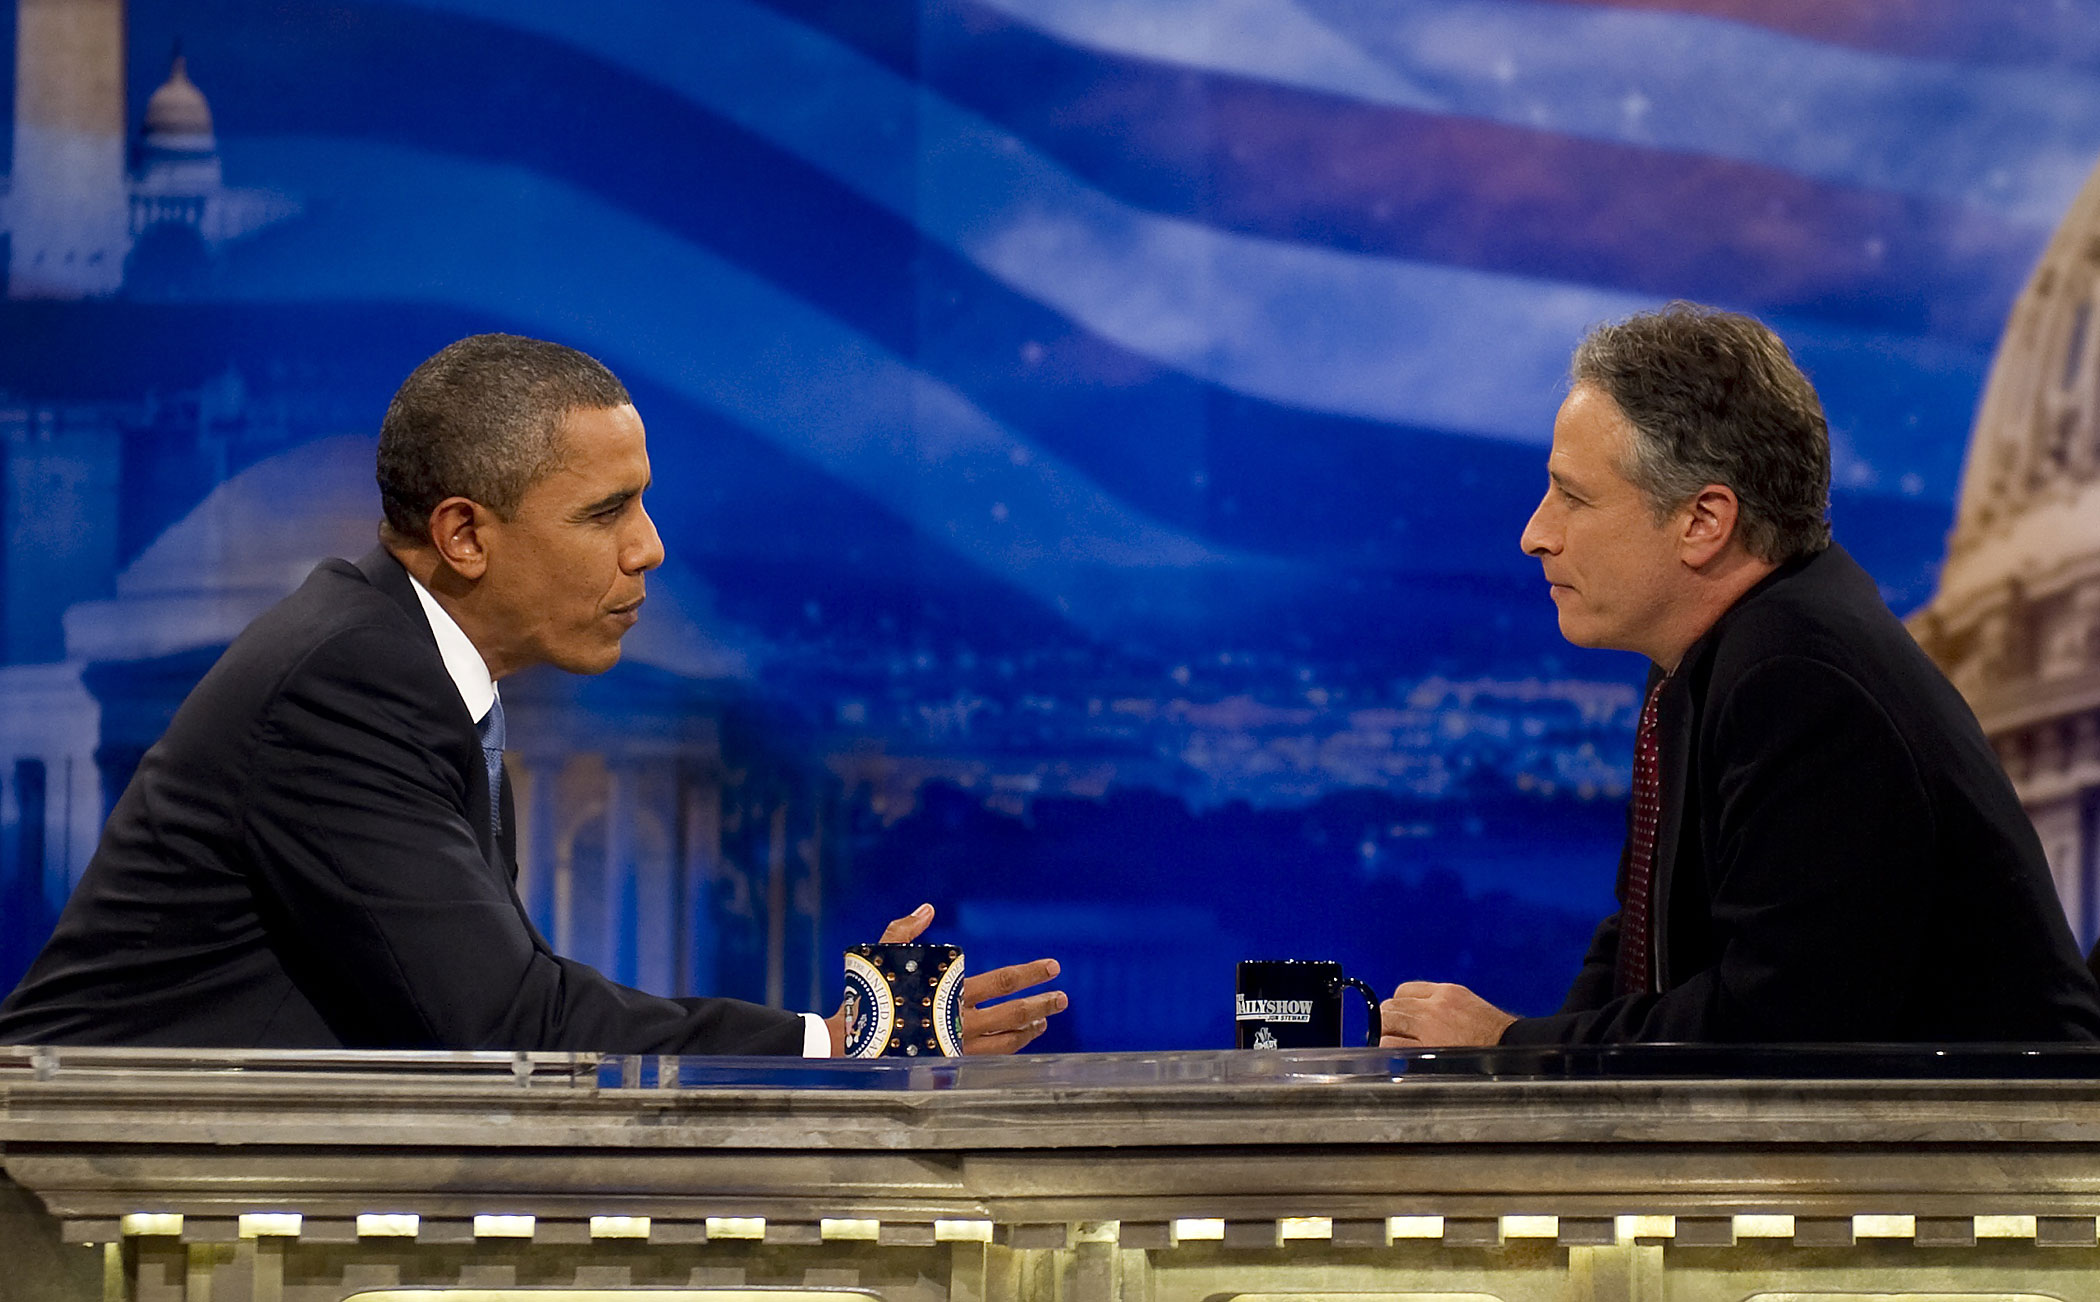 Jon Stewart interviews President Barack Obama on <i>The Daily Show</i> at the Harman Center for the Arts in Washington, DC, Oct. 26, 2010.